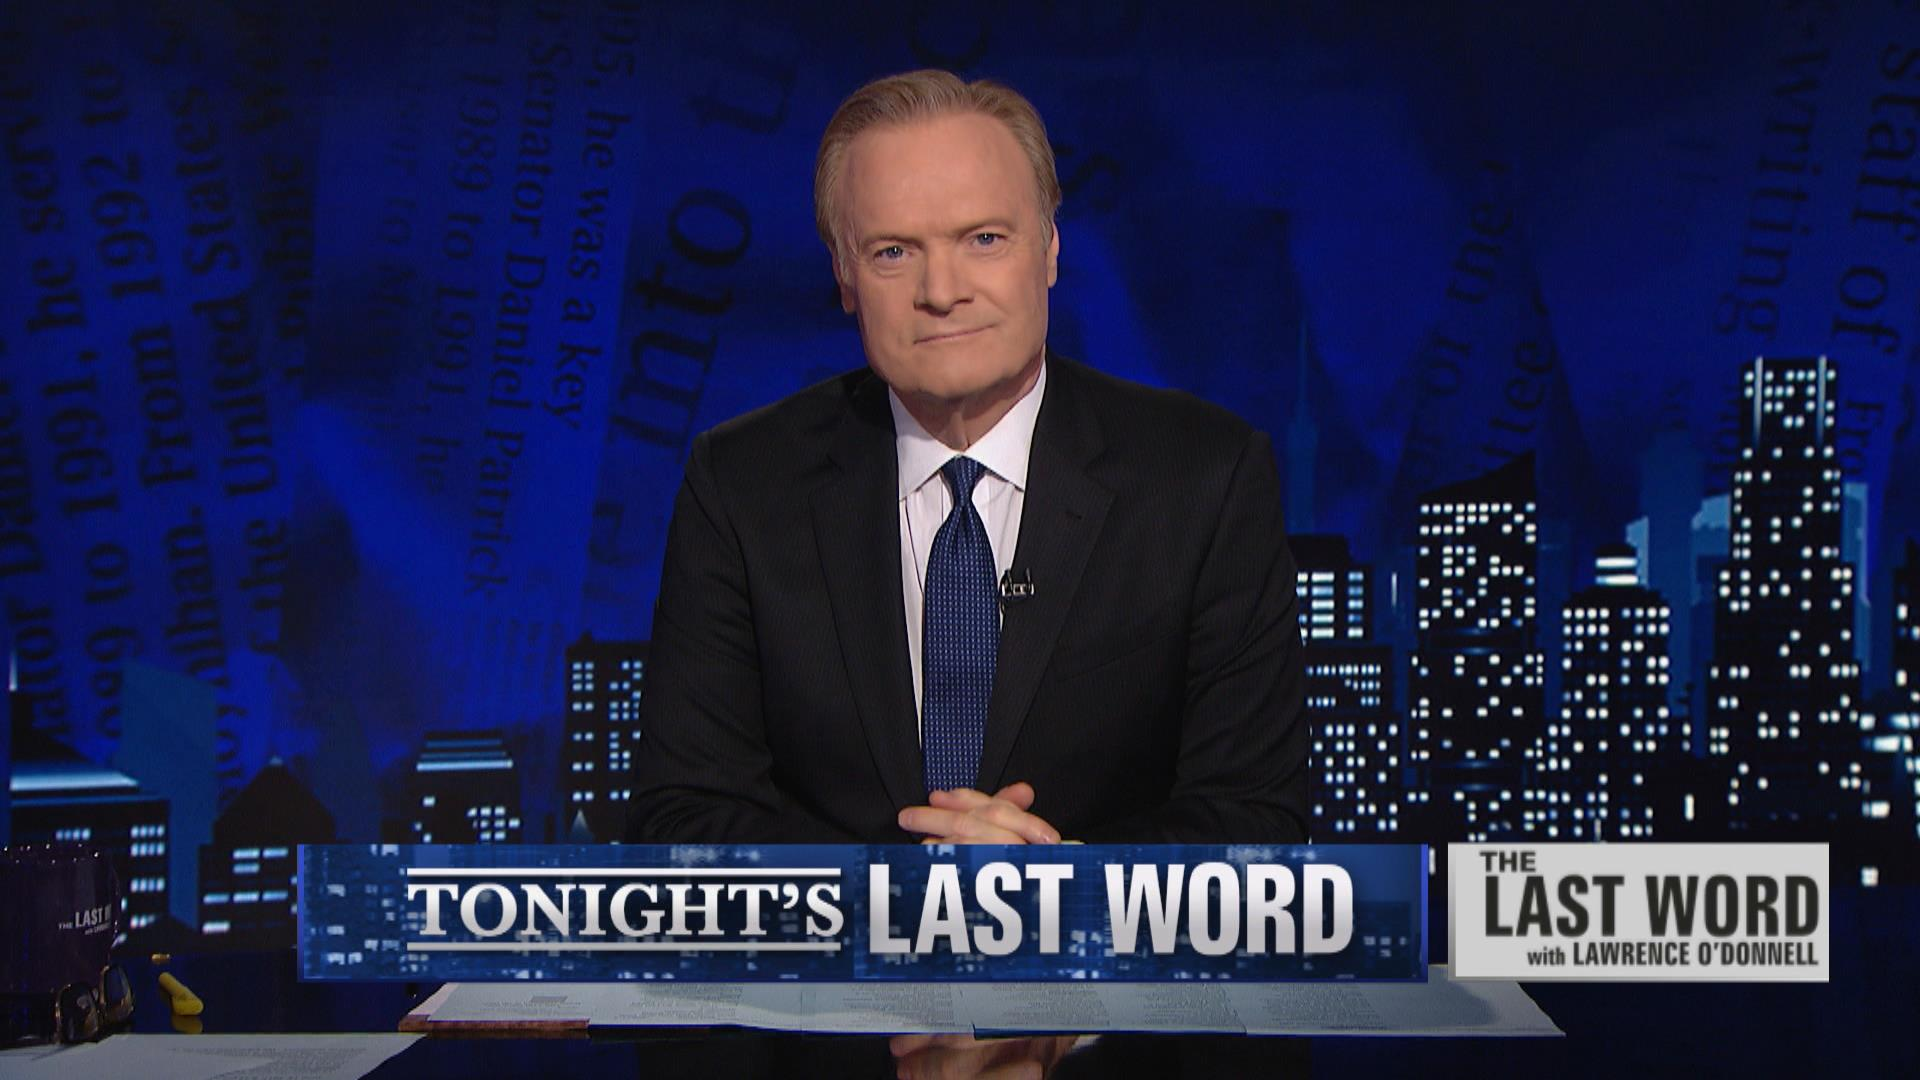 Lawrence O'Donnell on Last Word on MSNBC